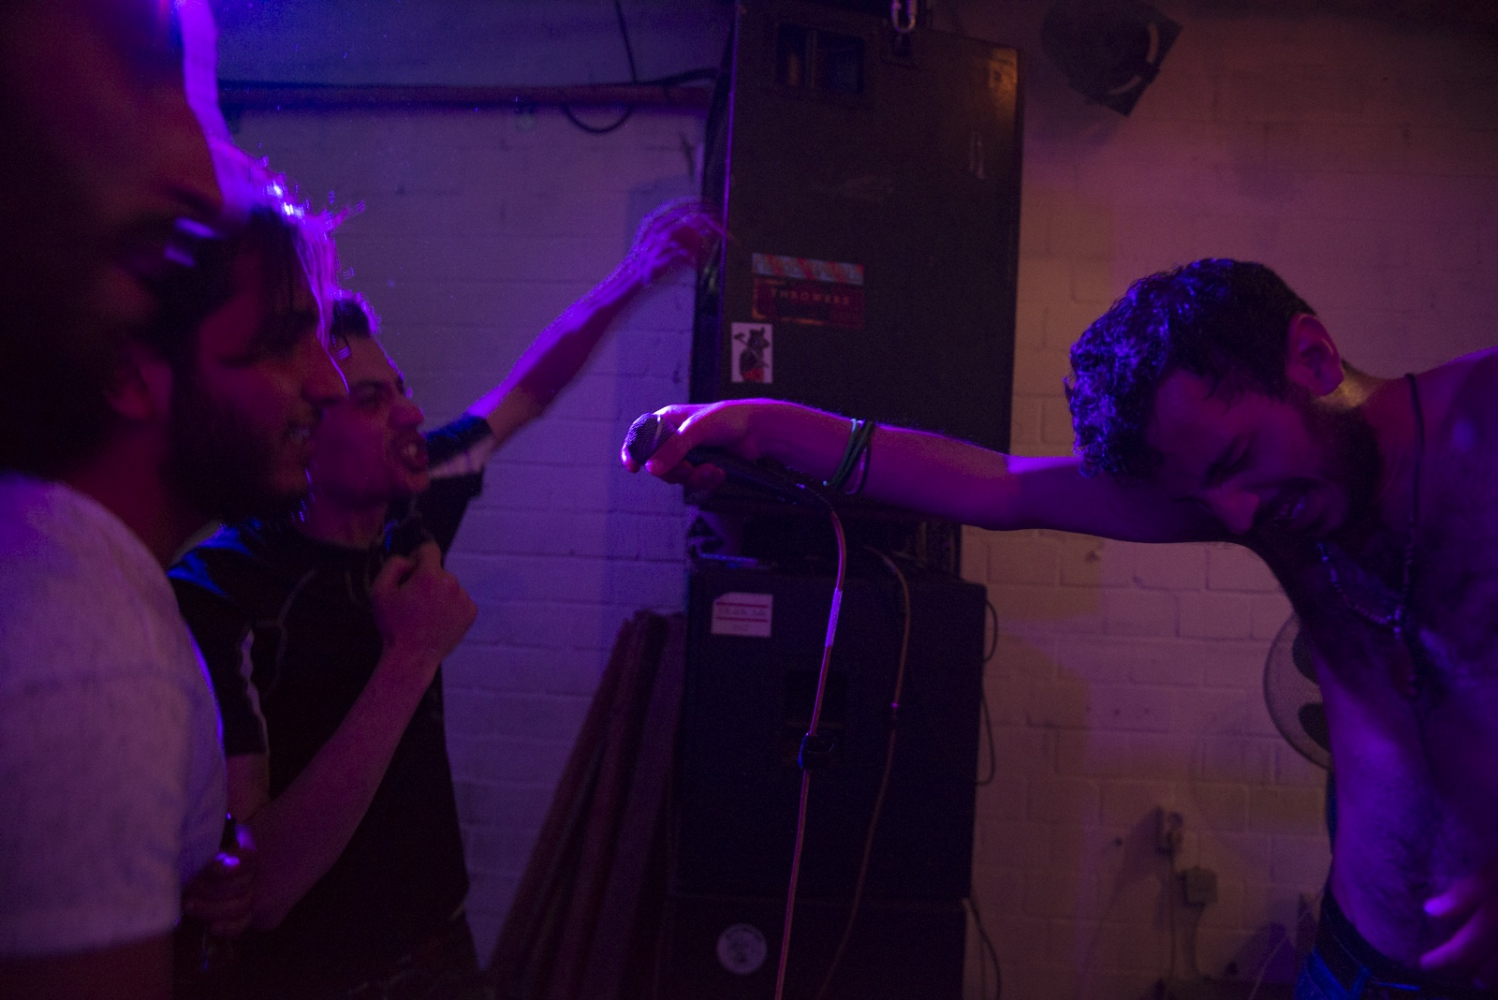 BERLIN| GERMANY | 2016-06-05| Mohammad (28) performs on stage at a local club in Berlin. Mohammad, a well know Syrian rapper, fled Syria after he spent some time in notorious jails of Assad's government for his activism and lyrics criticizing Assad's government.